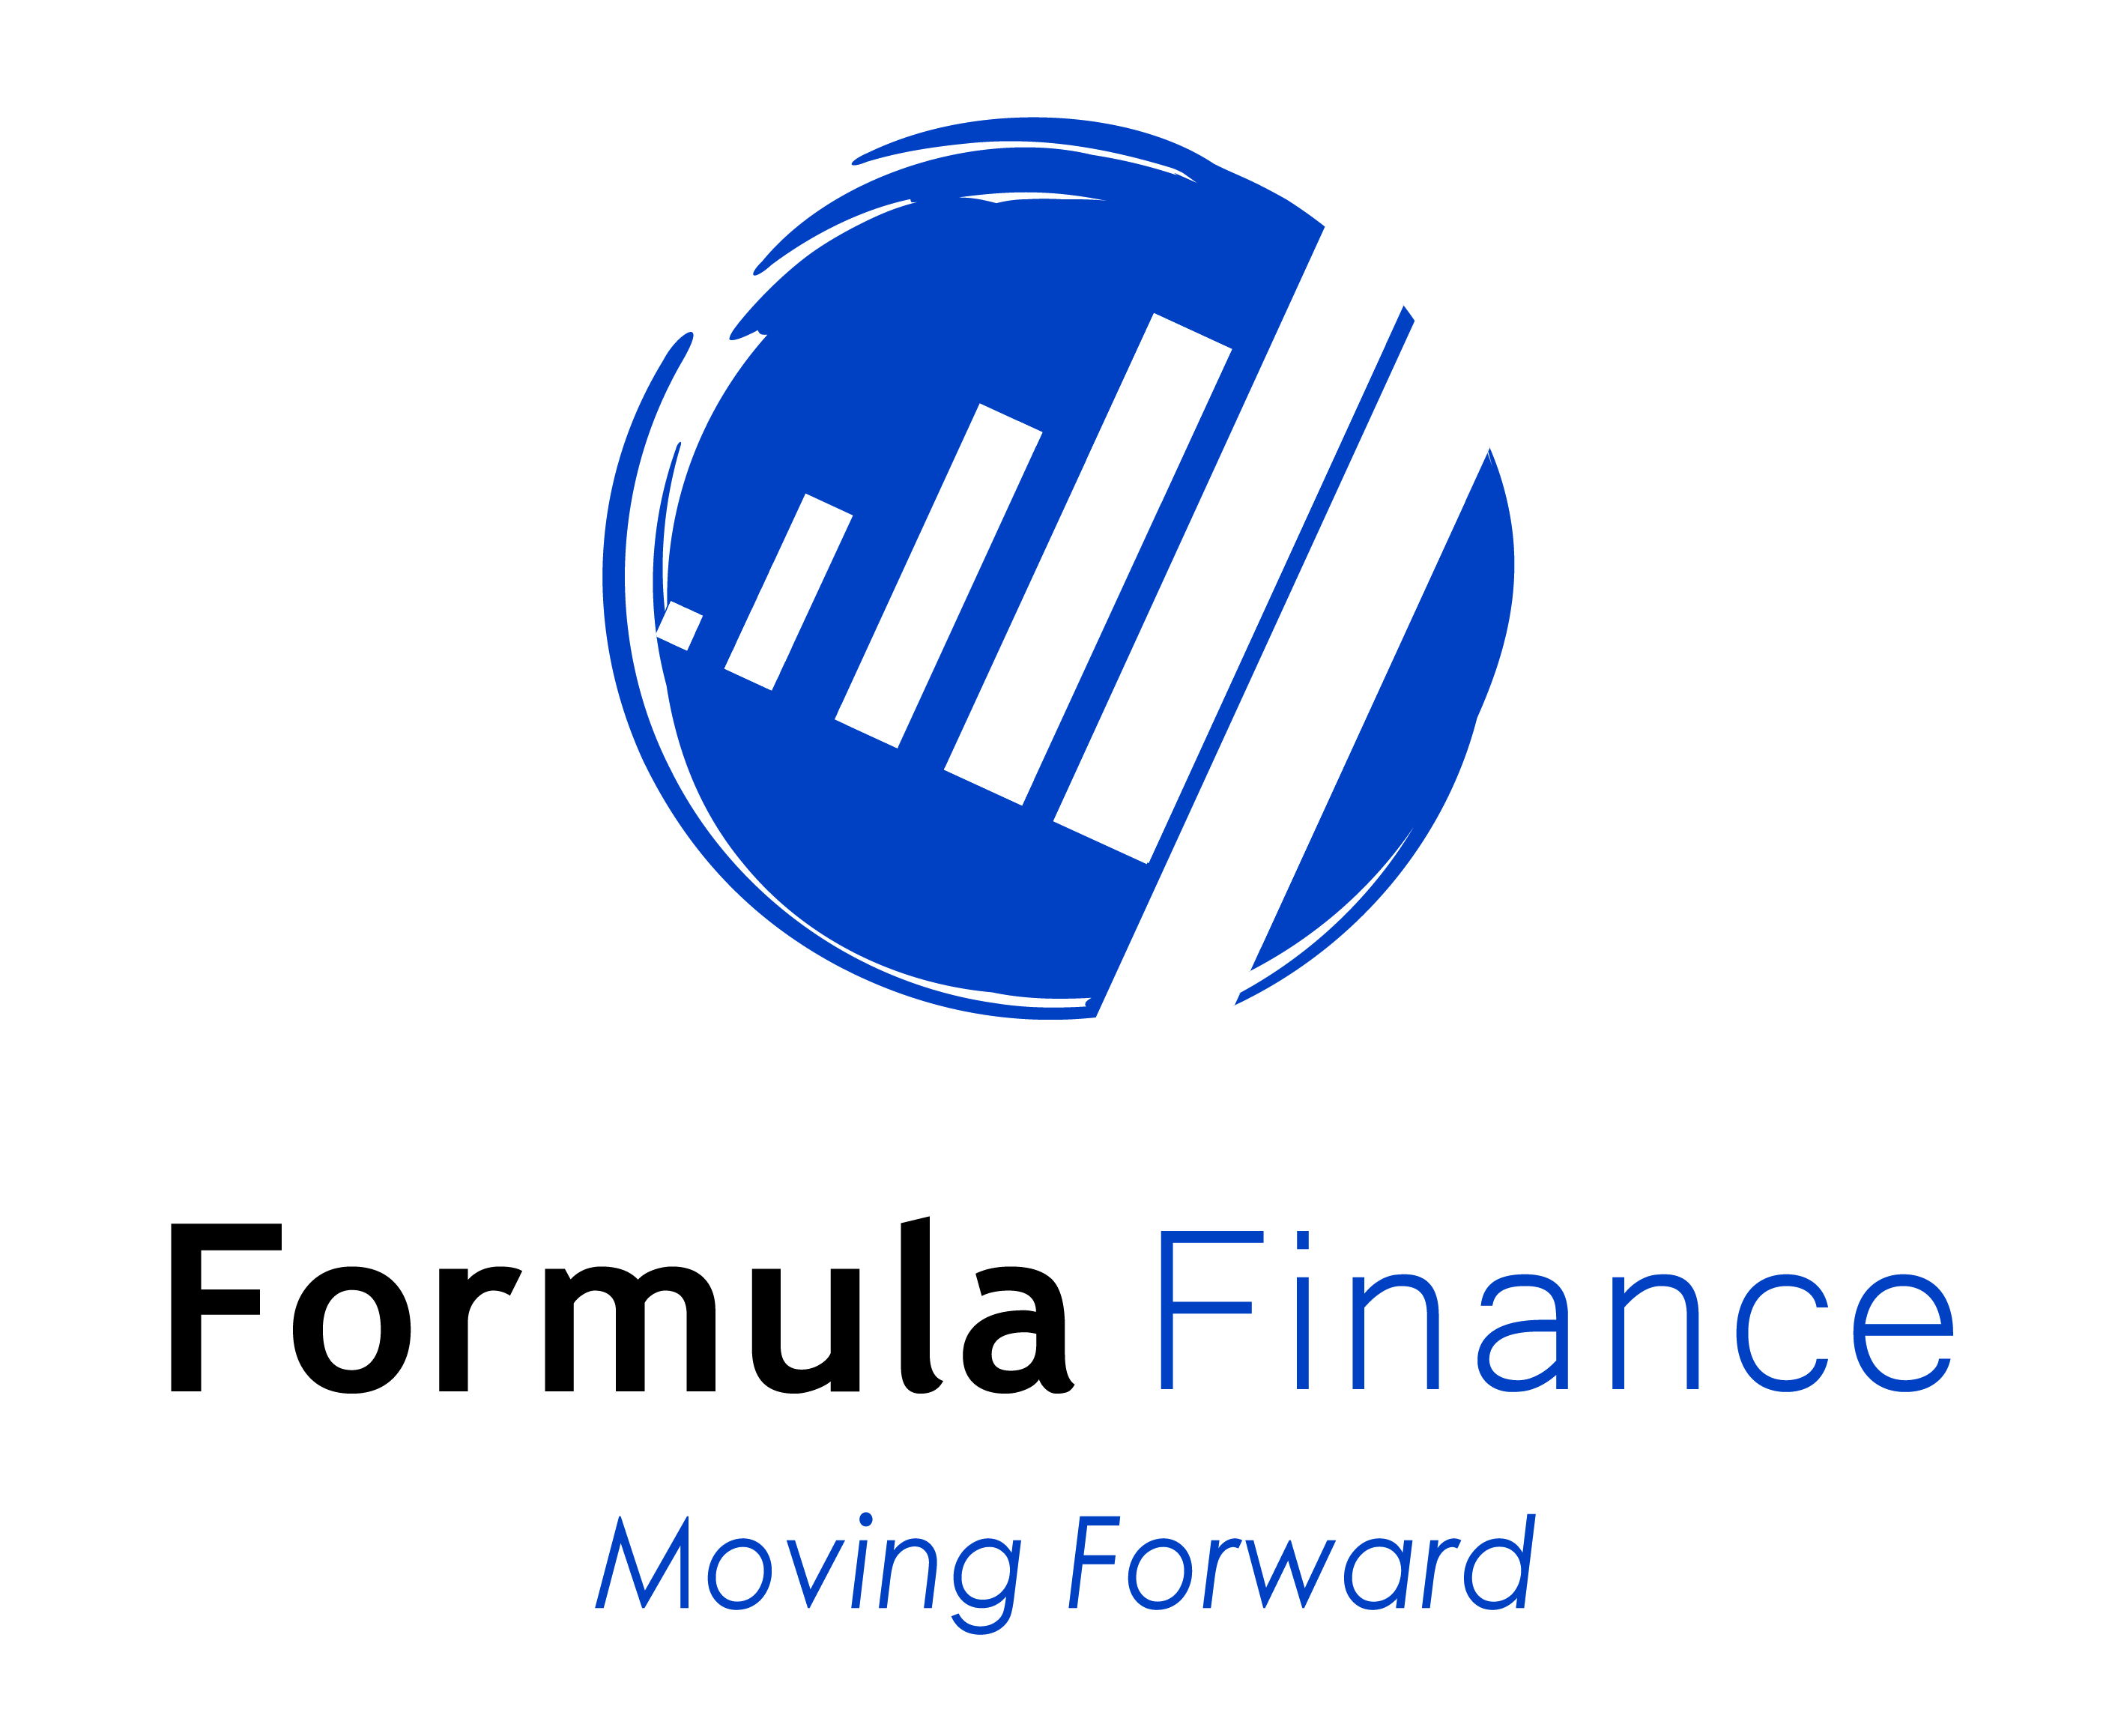 Formula Finance - Moving Forward